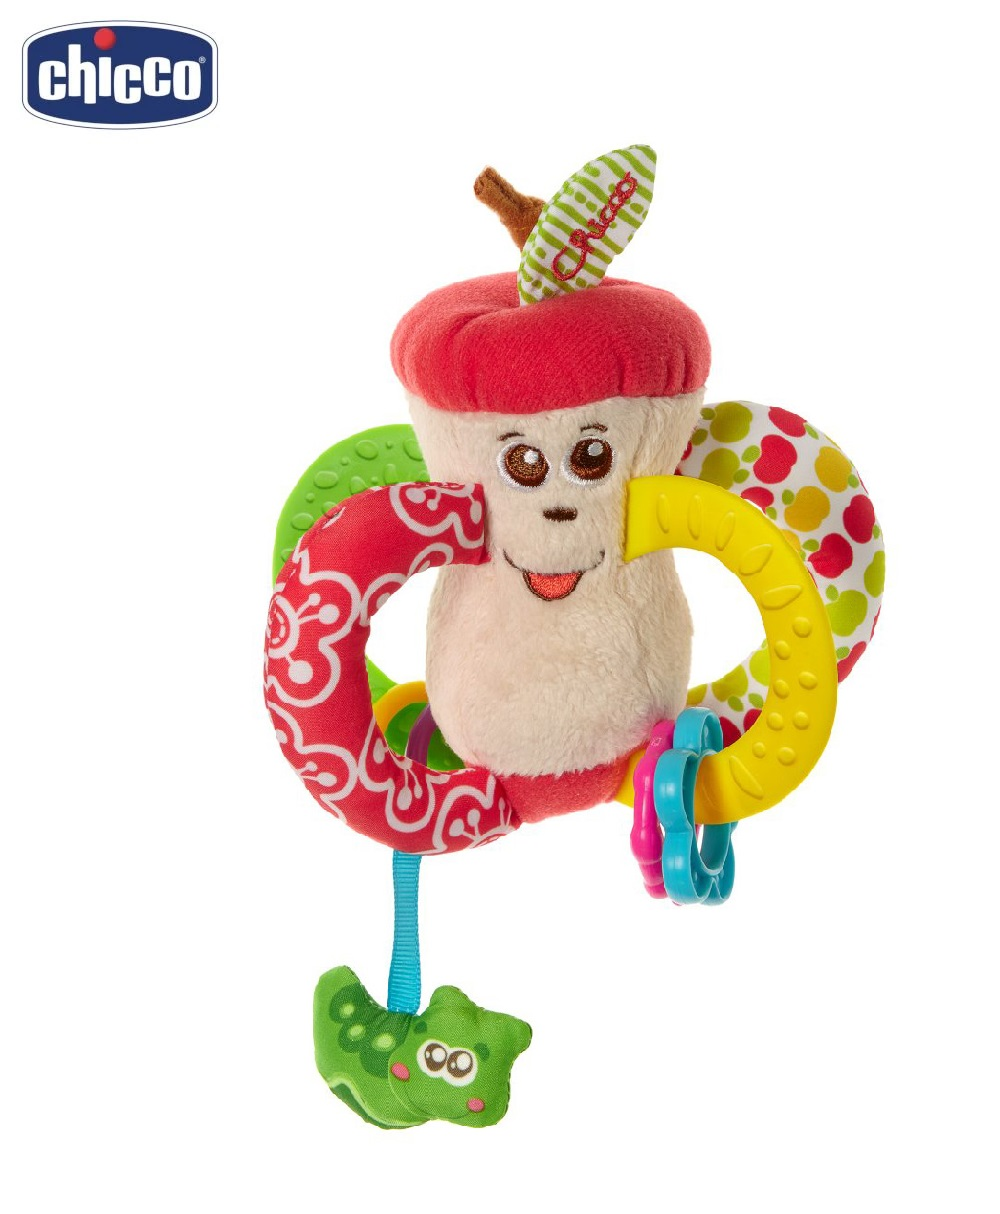 Baby Rattles & Mobiles Chicco 64819 Educational For Kids Baby & Toddler Toy Children Babies